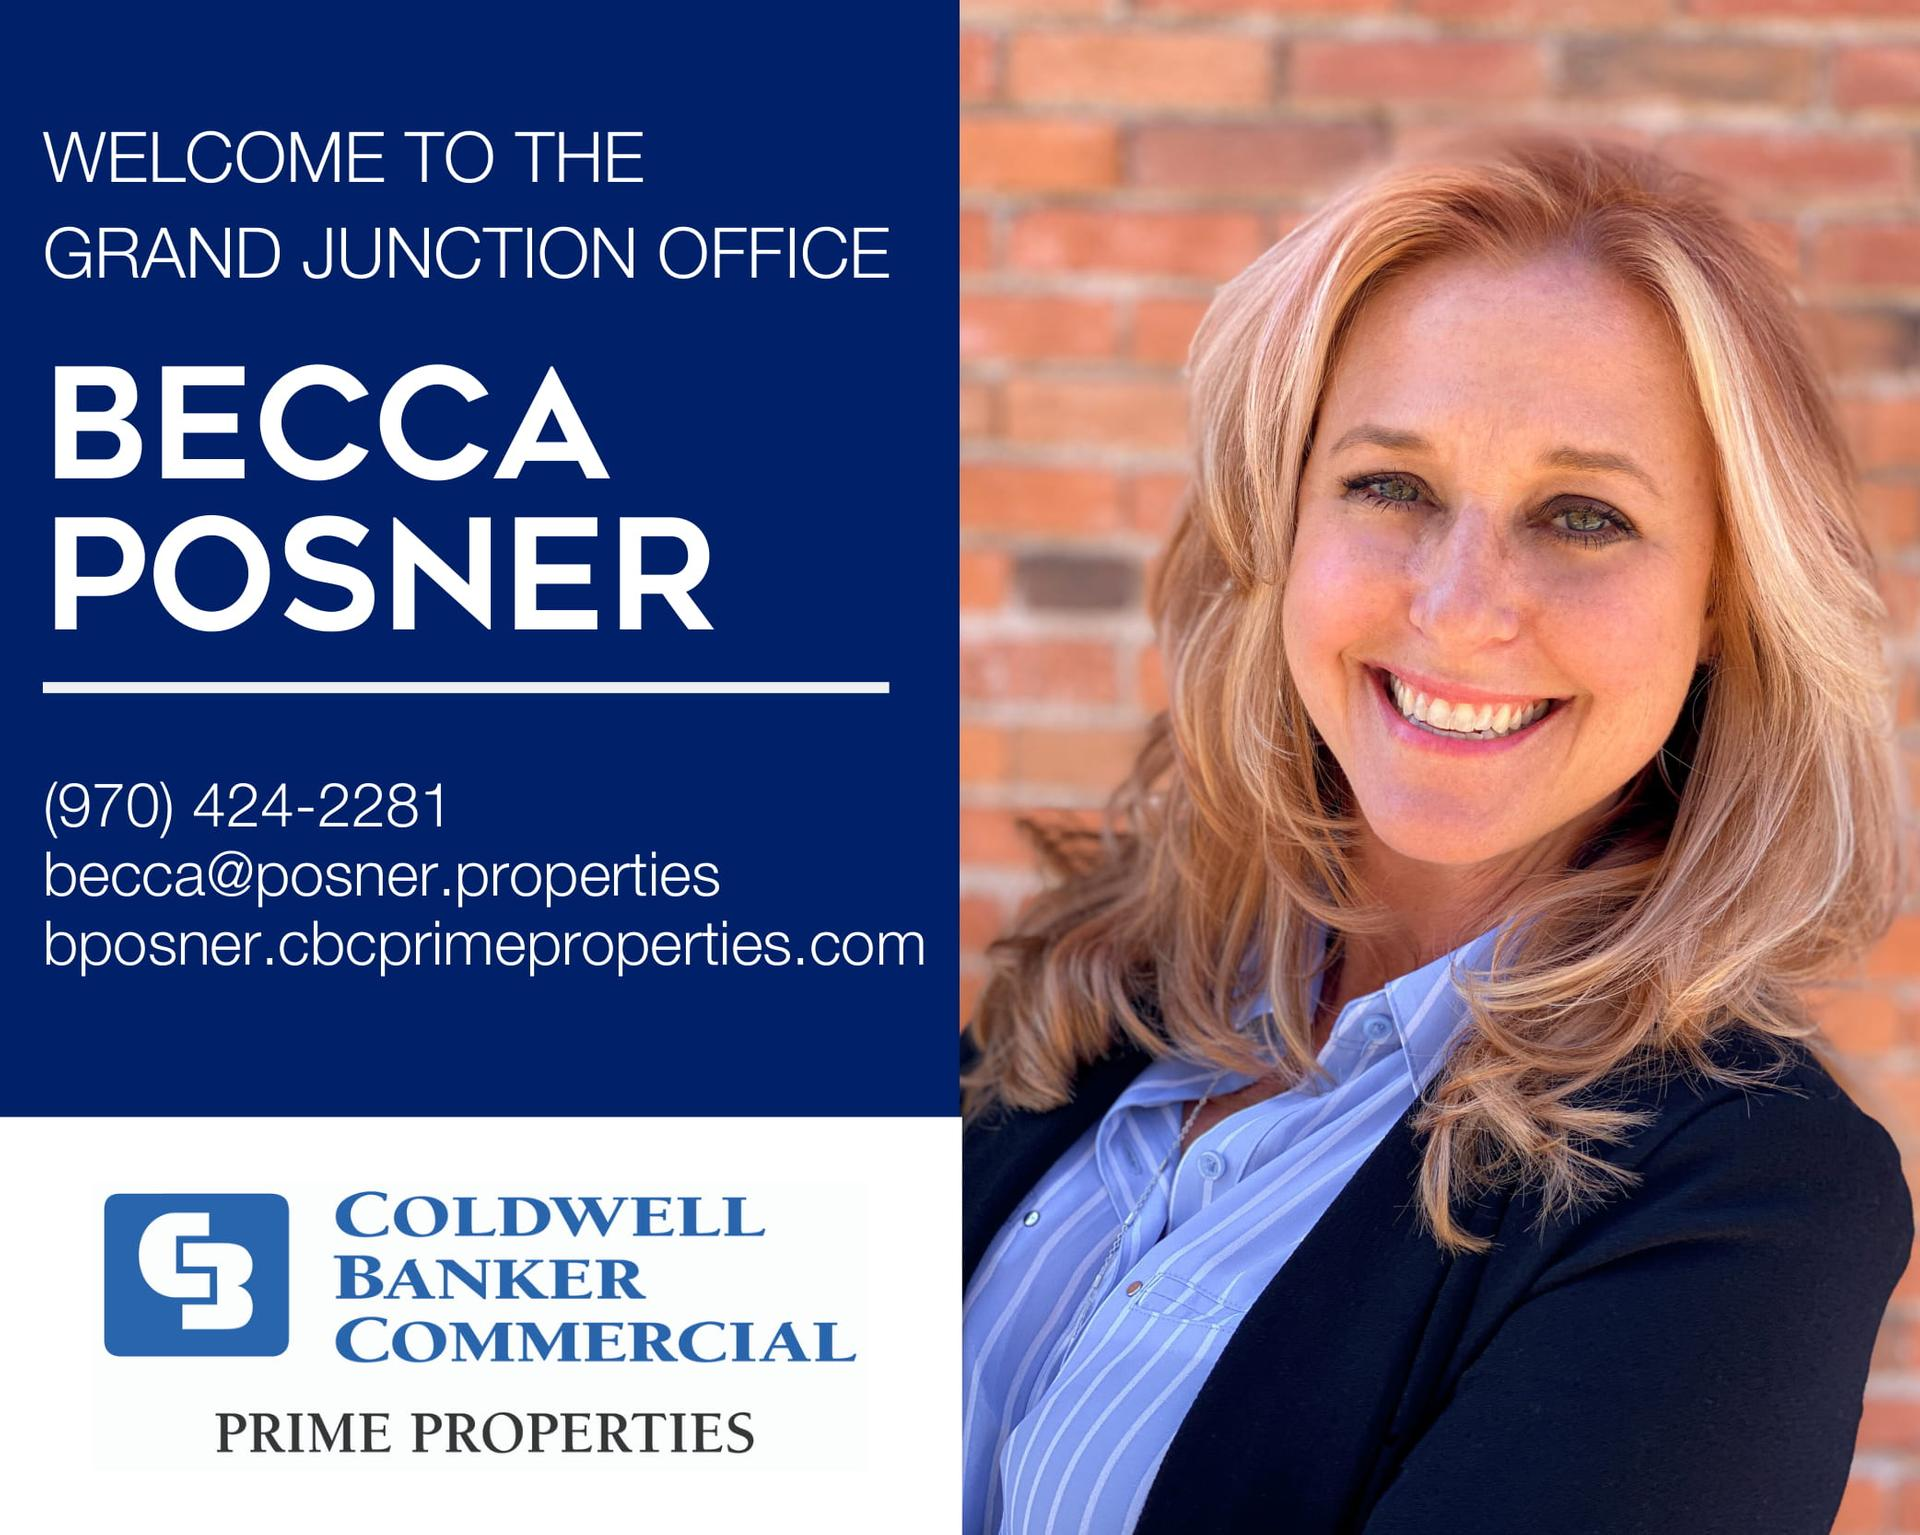 Please help us welcome Becca Posner to our Coldwell Banker Commercial Prime Properties family! Main Photo